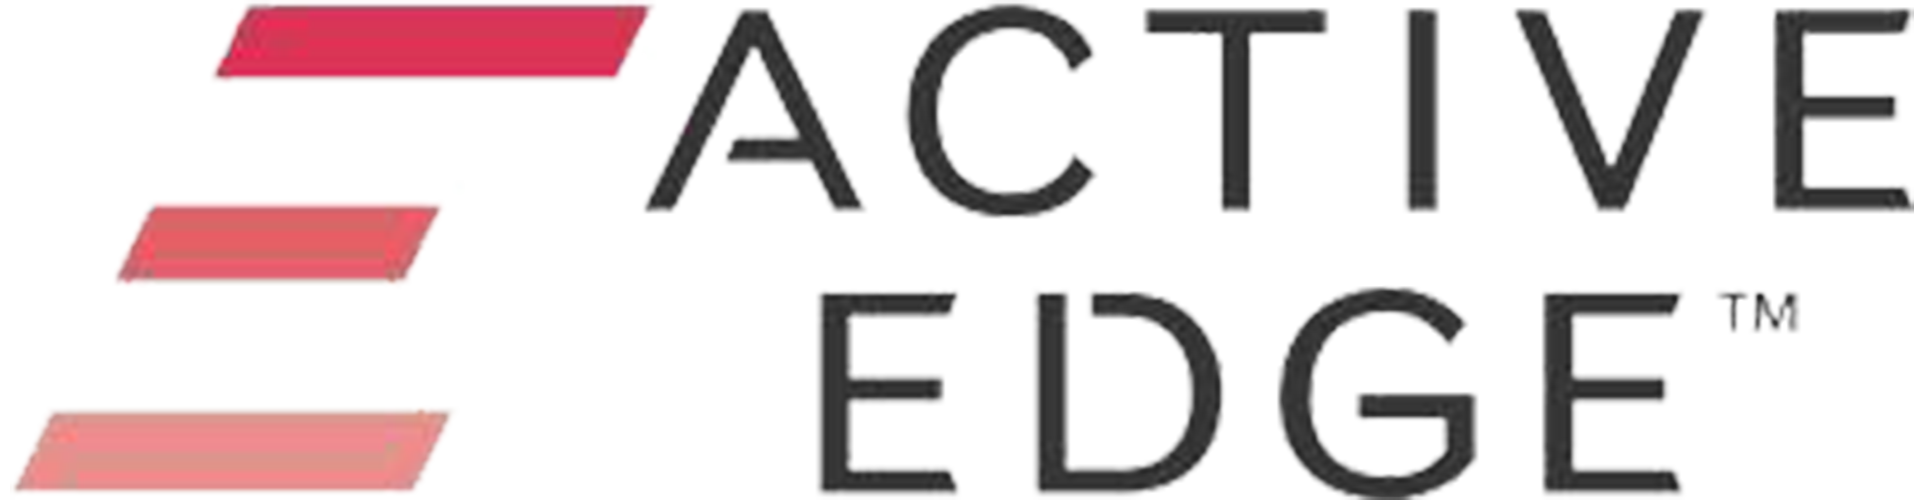 active edge logo 500px H.png